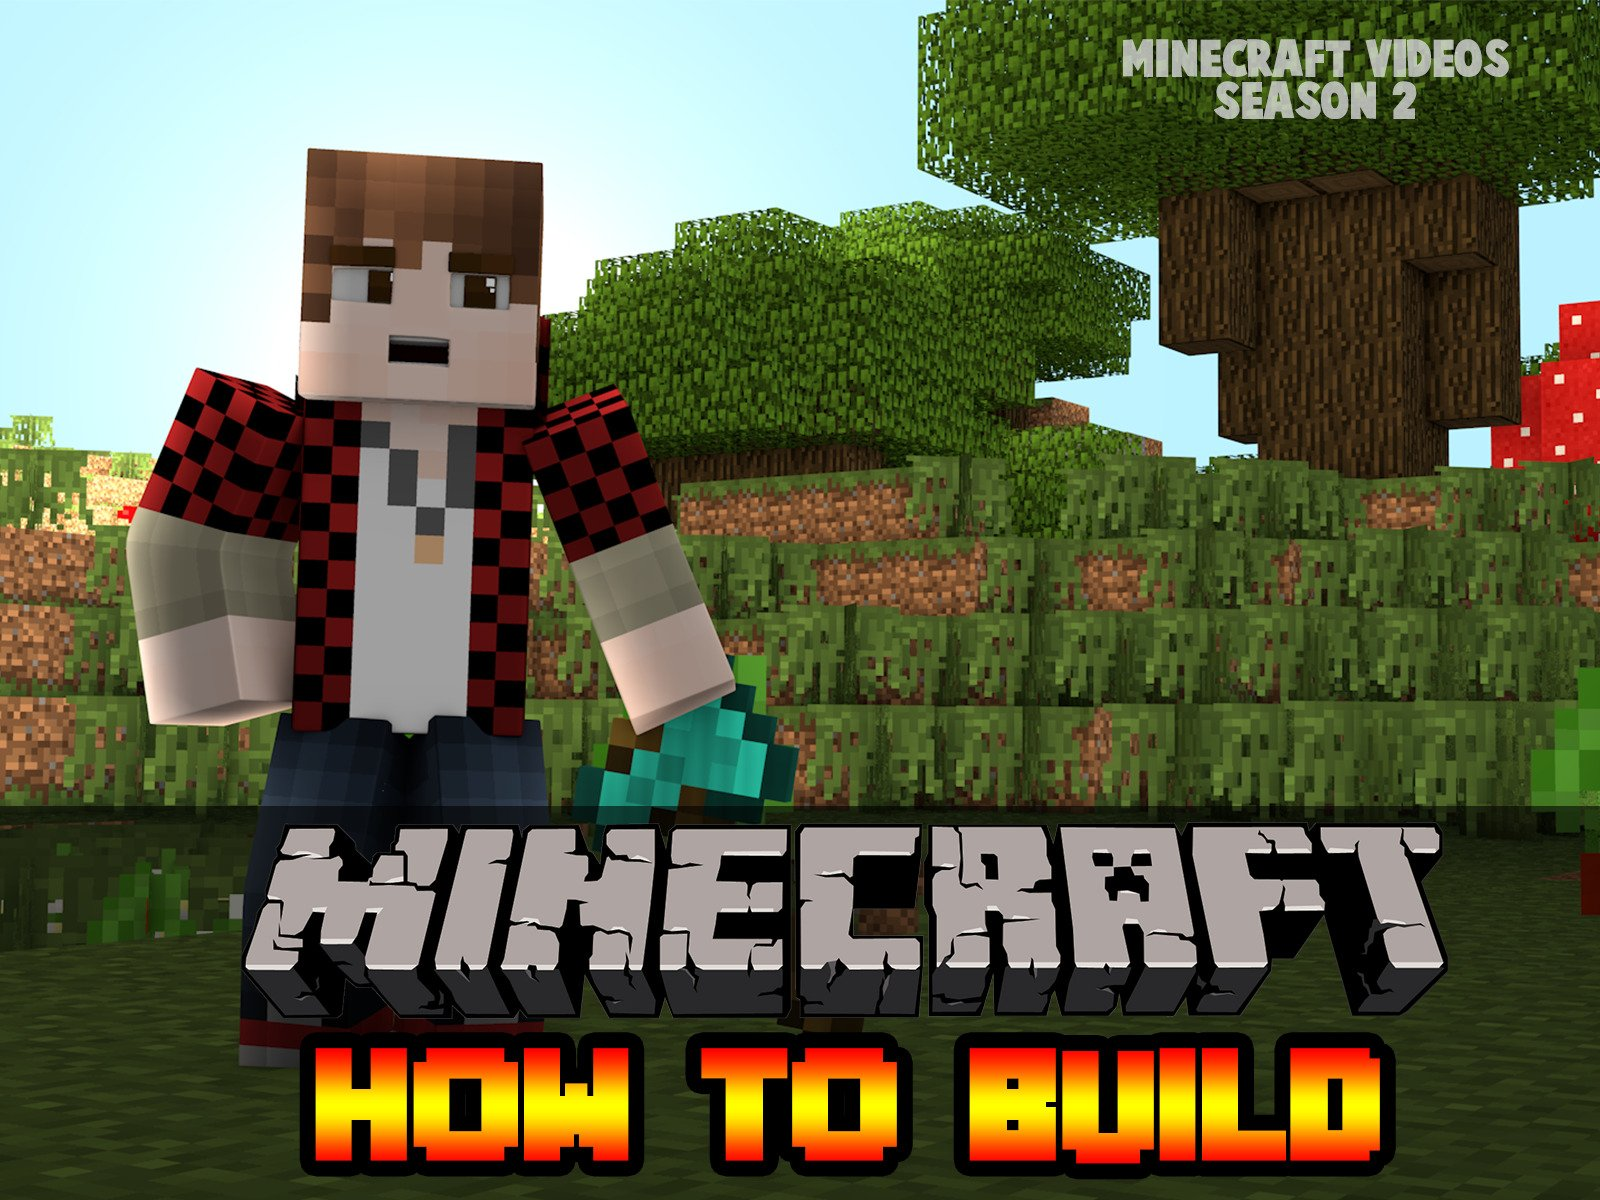 Minecraft how to build...